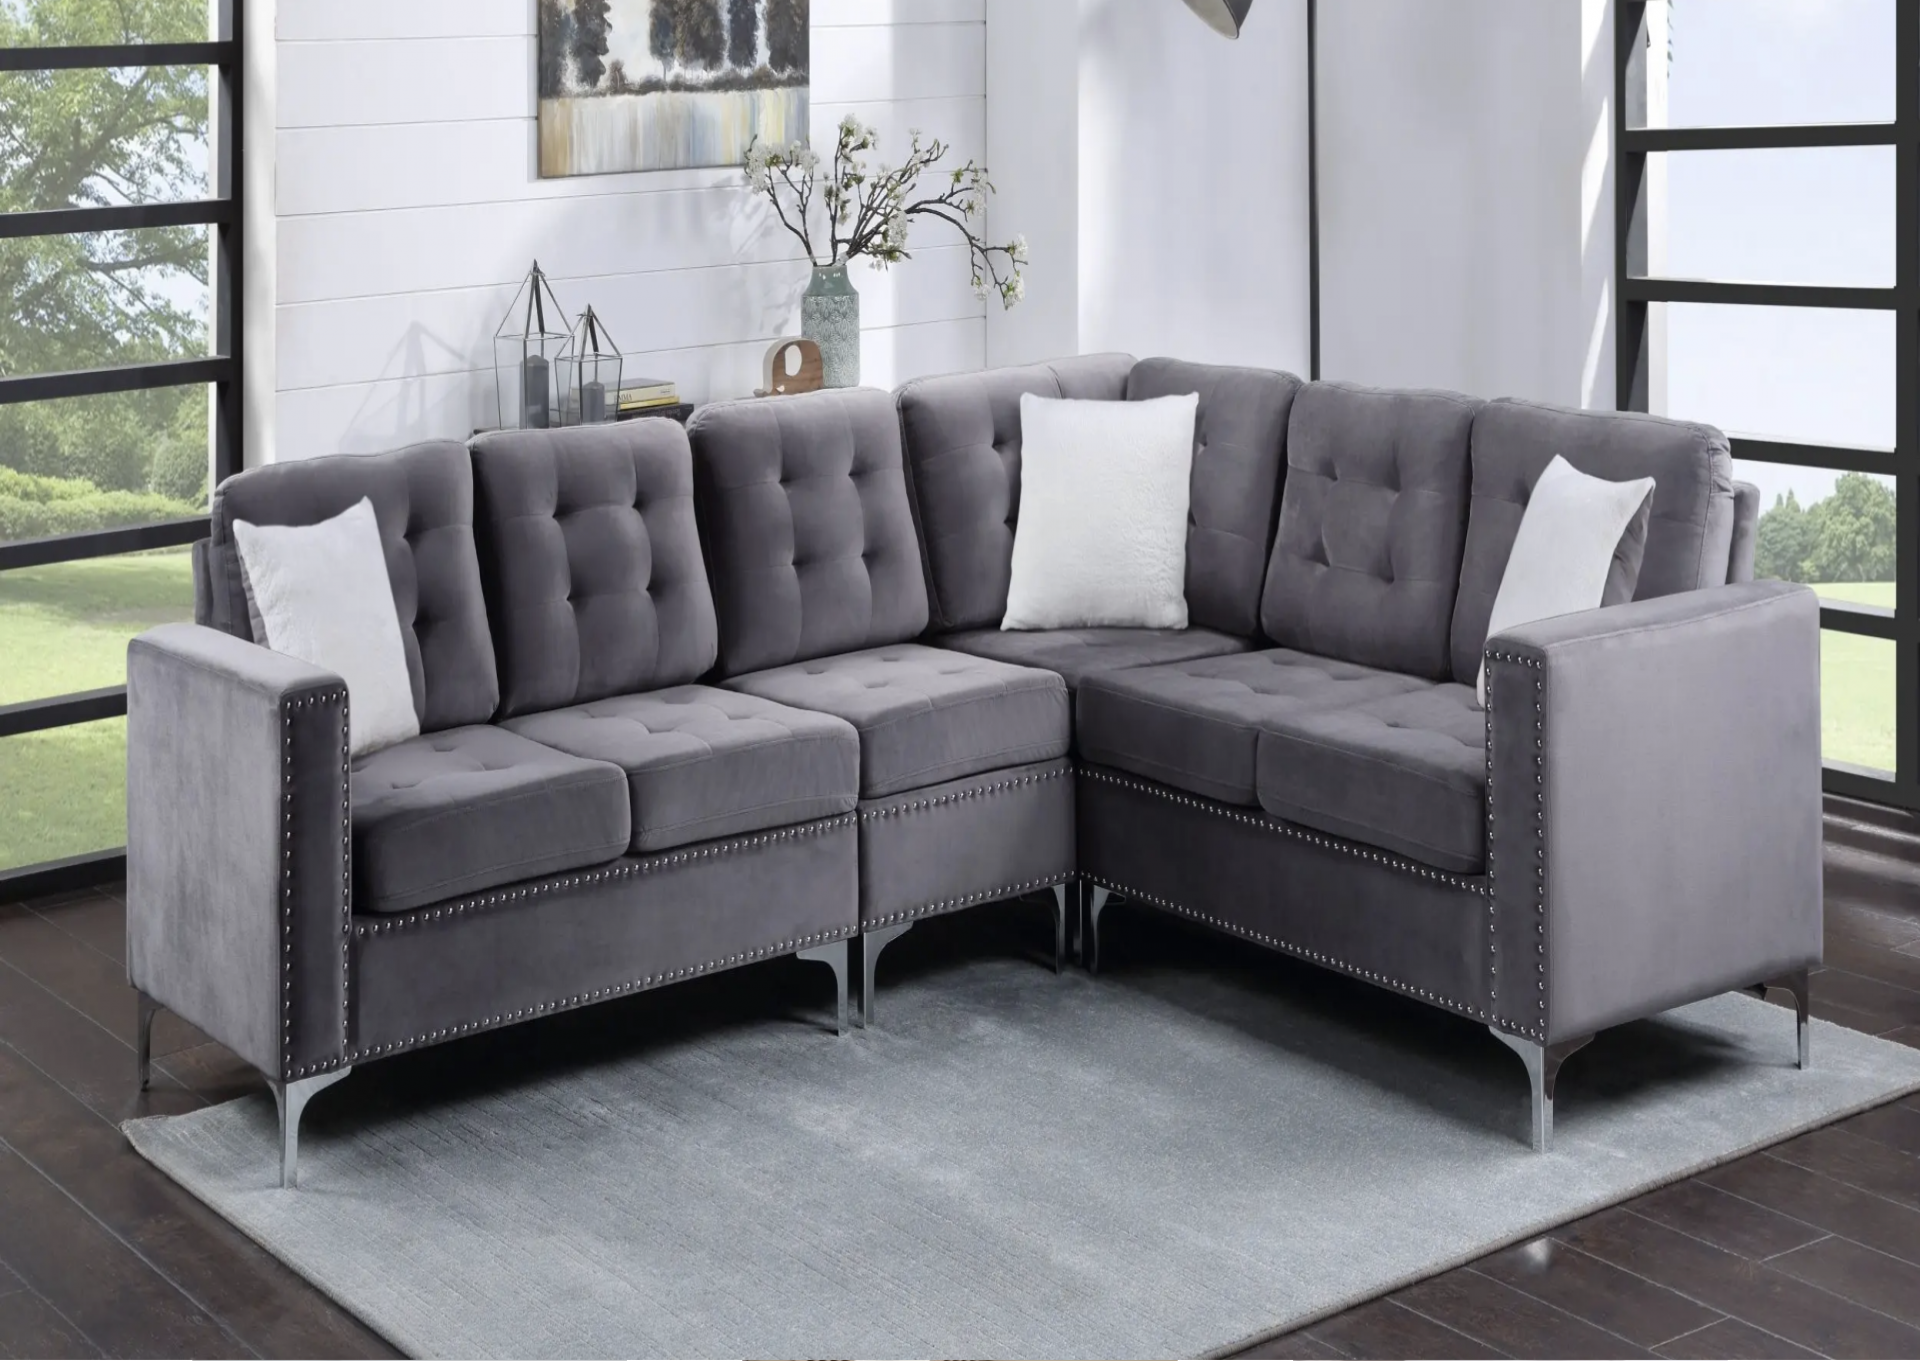 3 Piece Sectional Sofa,March Flyer